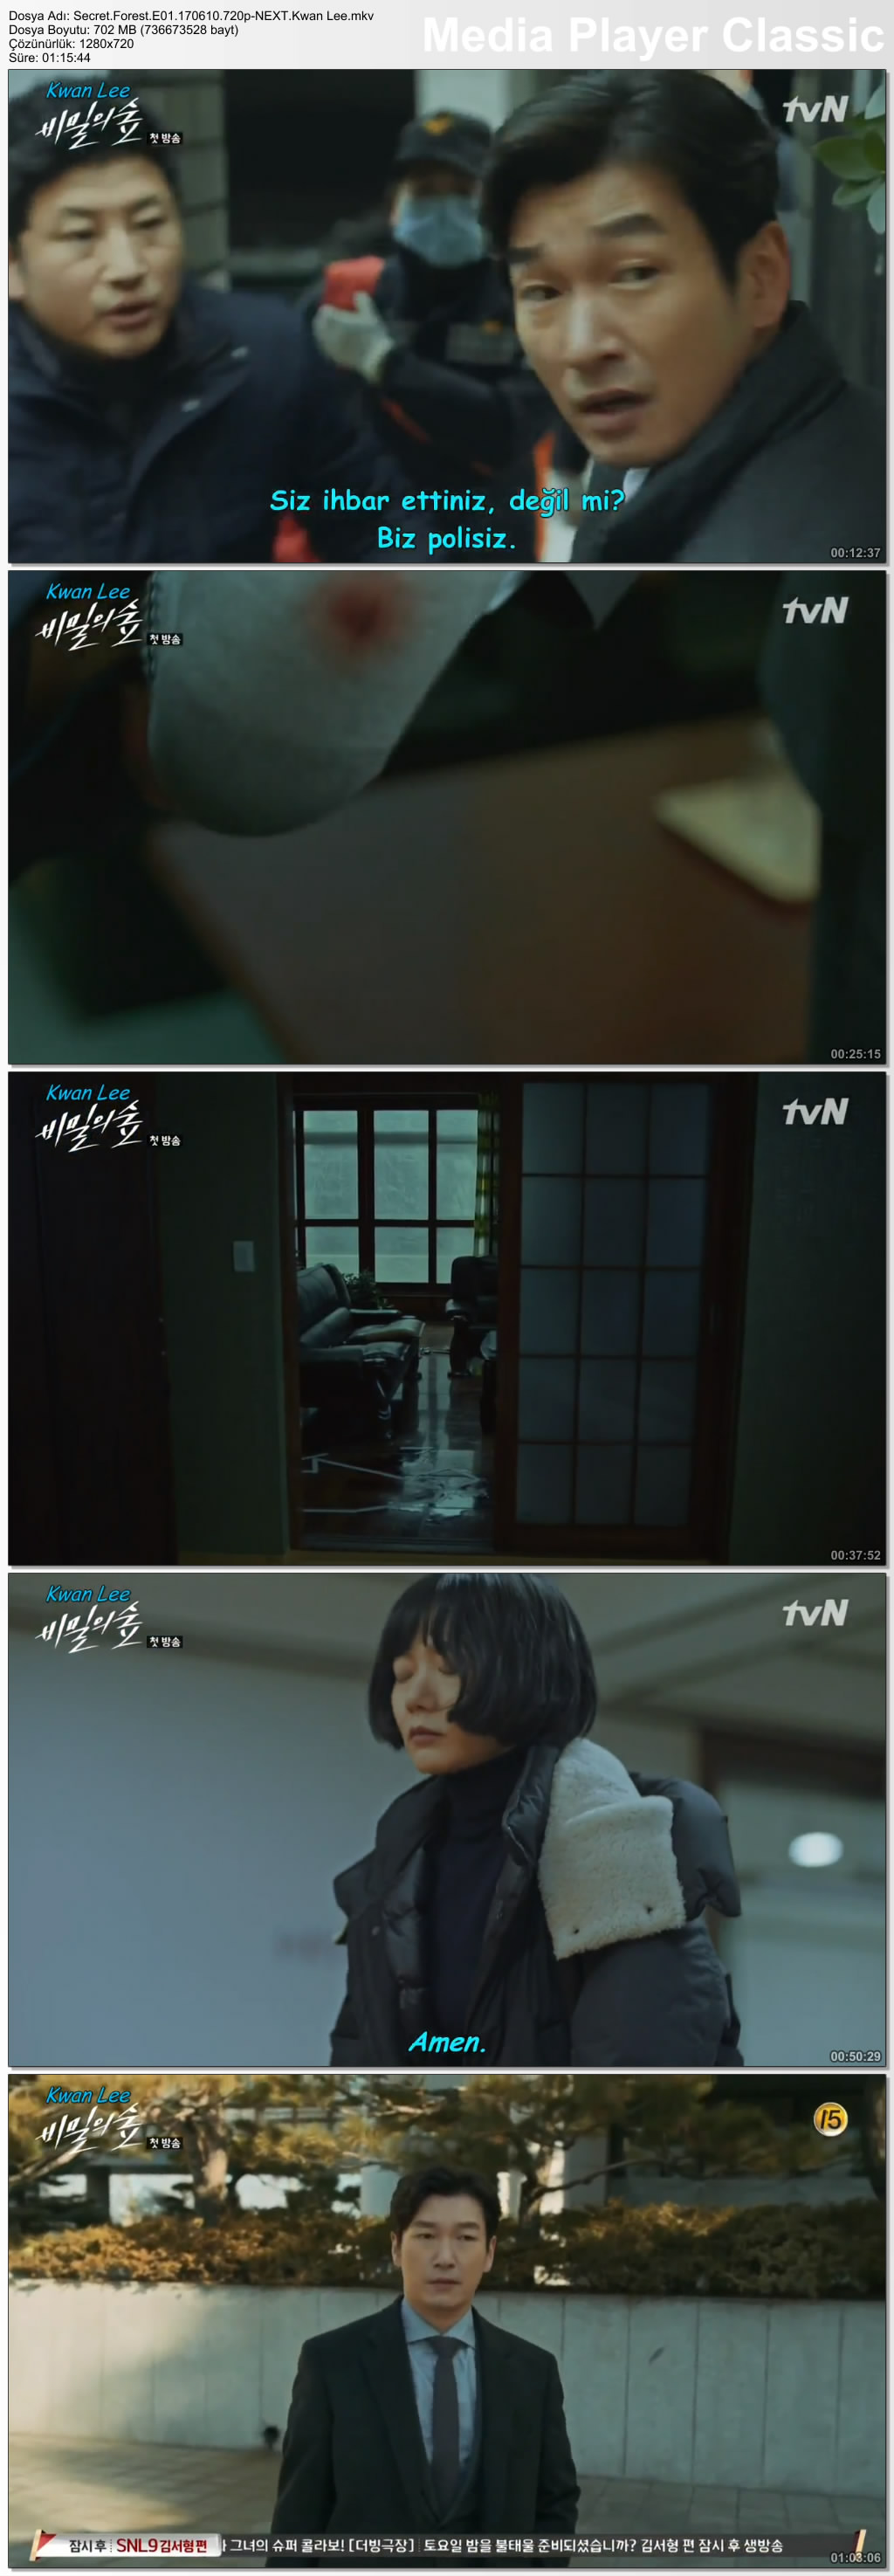 [Resim: Secret.Forest.E01.170610.720p-NEXT.Kwan%....20%5D.jpg]